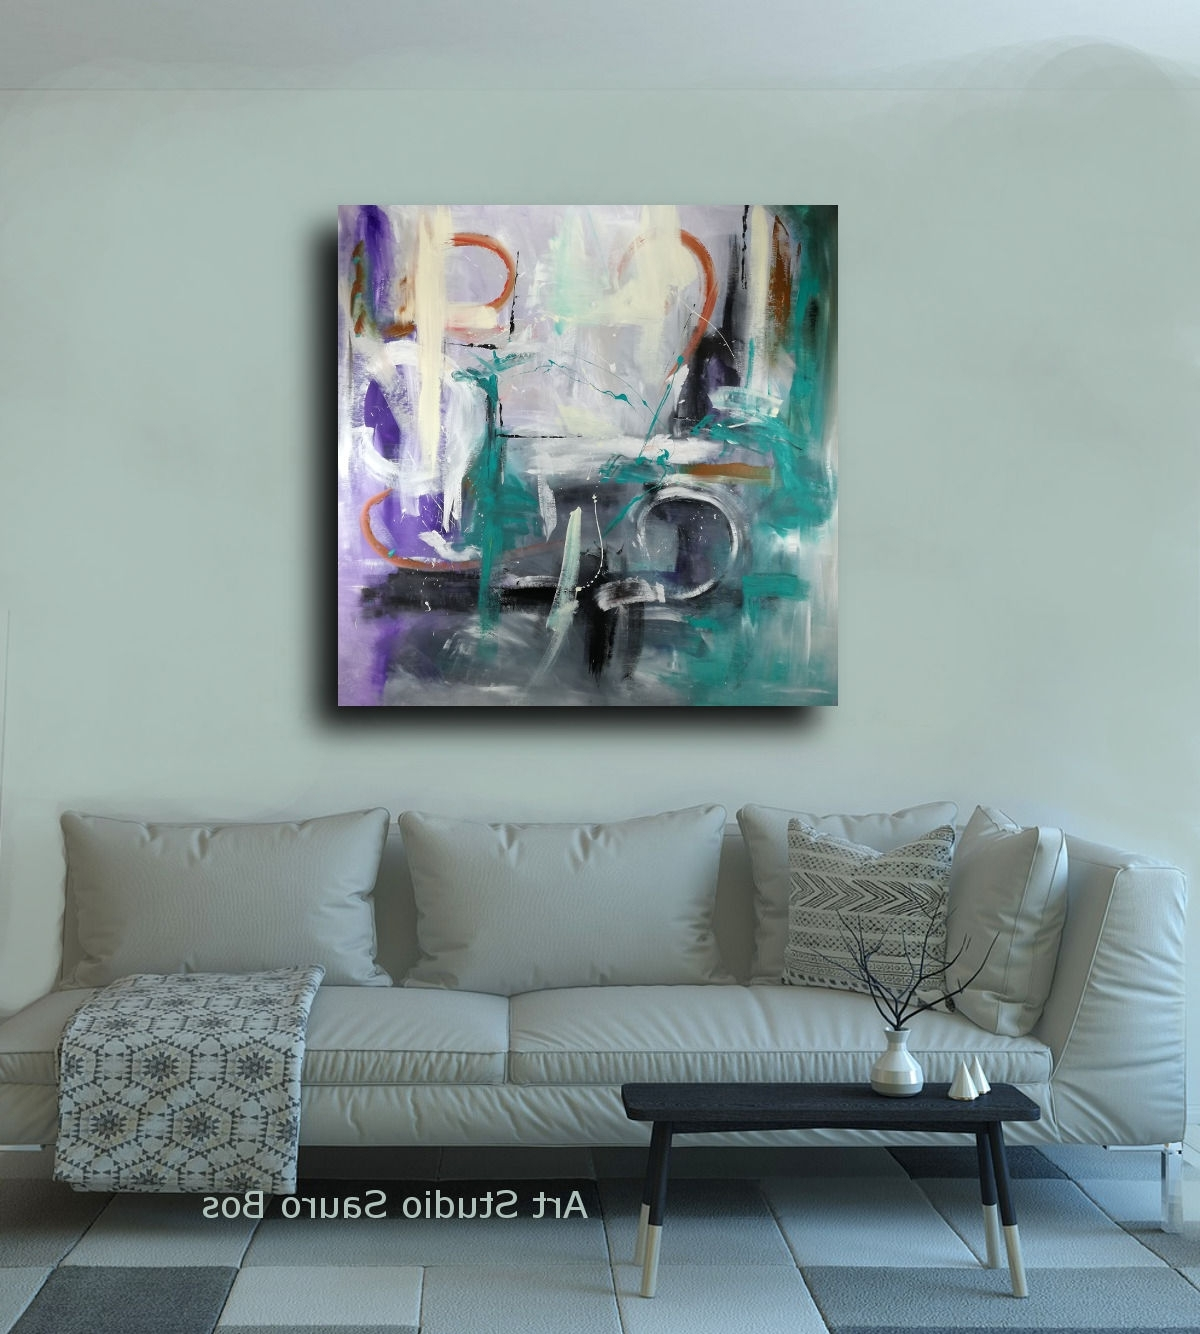 Large Canvas Painting Wall Art Within Most Up To Date Abstract Oil Painting Wall Art 120X (View 7 of 15)